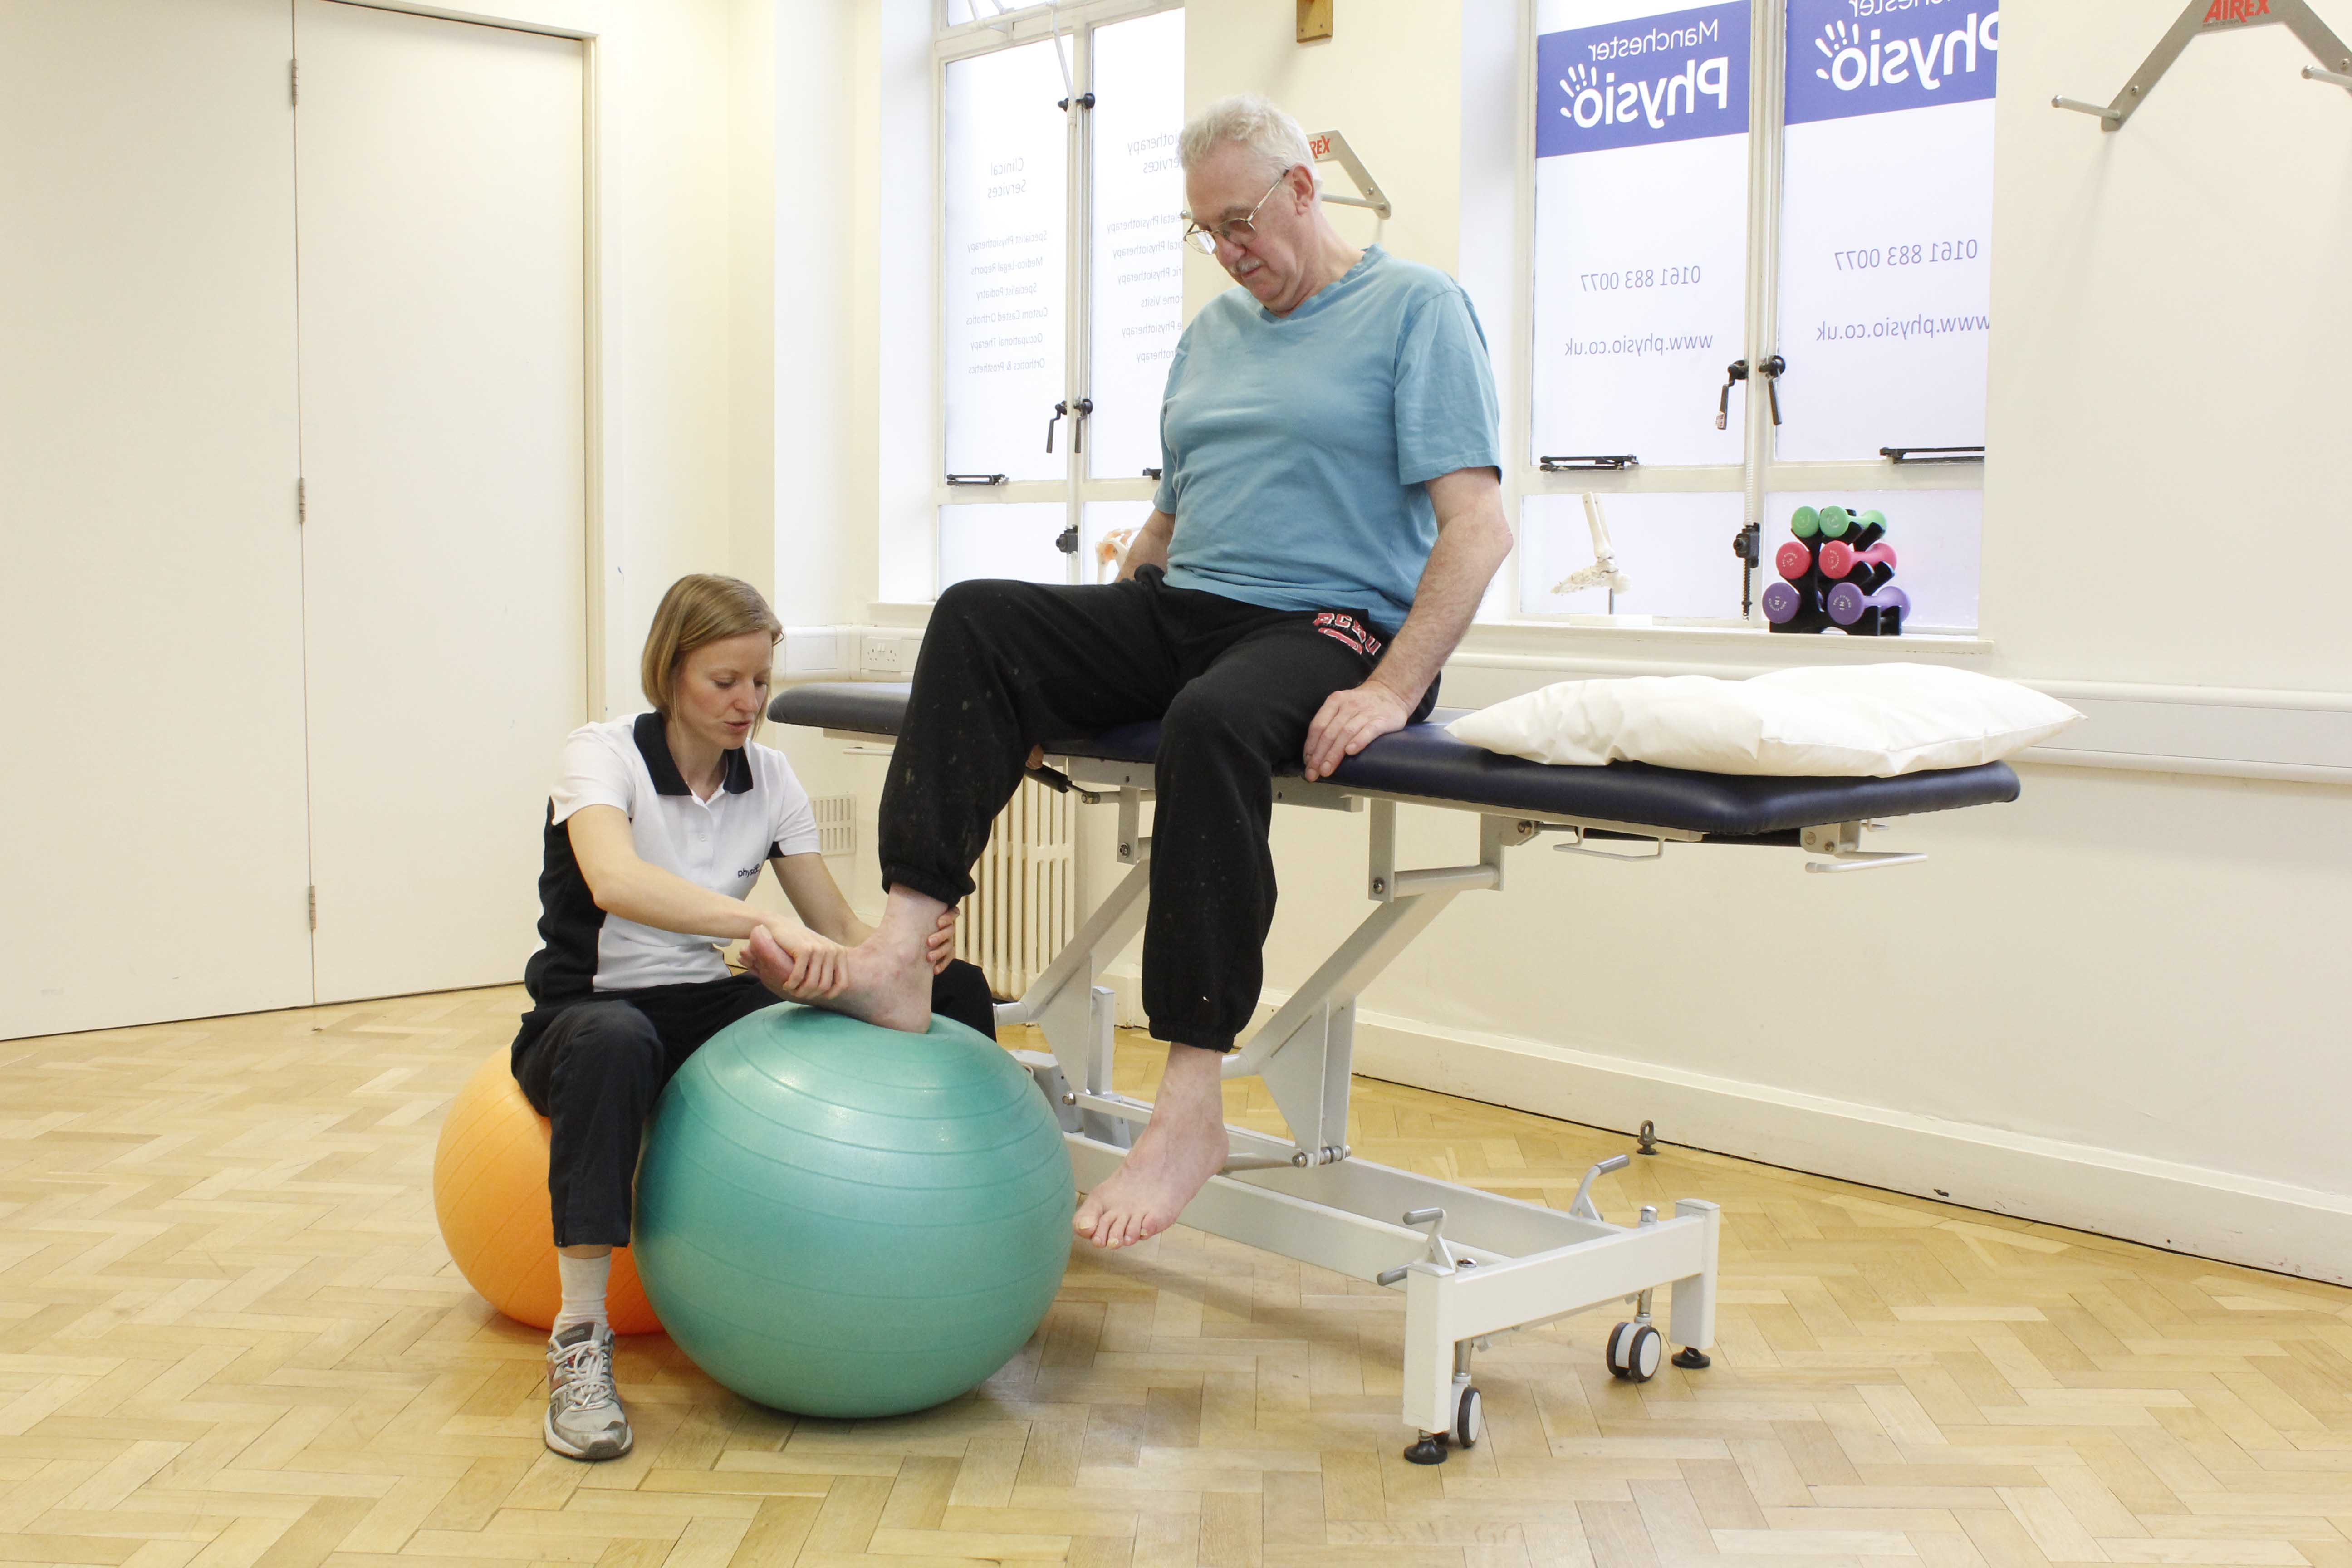 Experienced physiotherapist assisting with some ankle dorsiflexion exercises